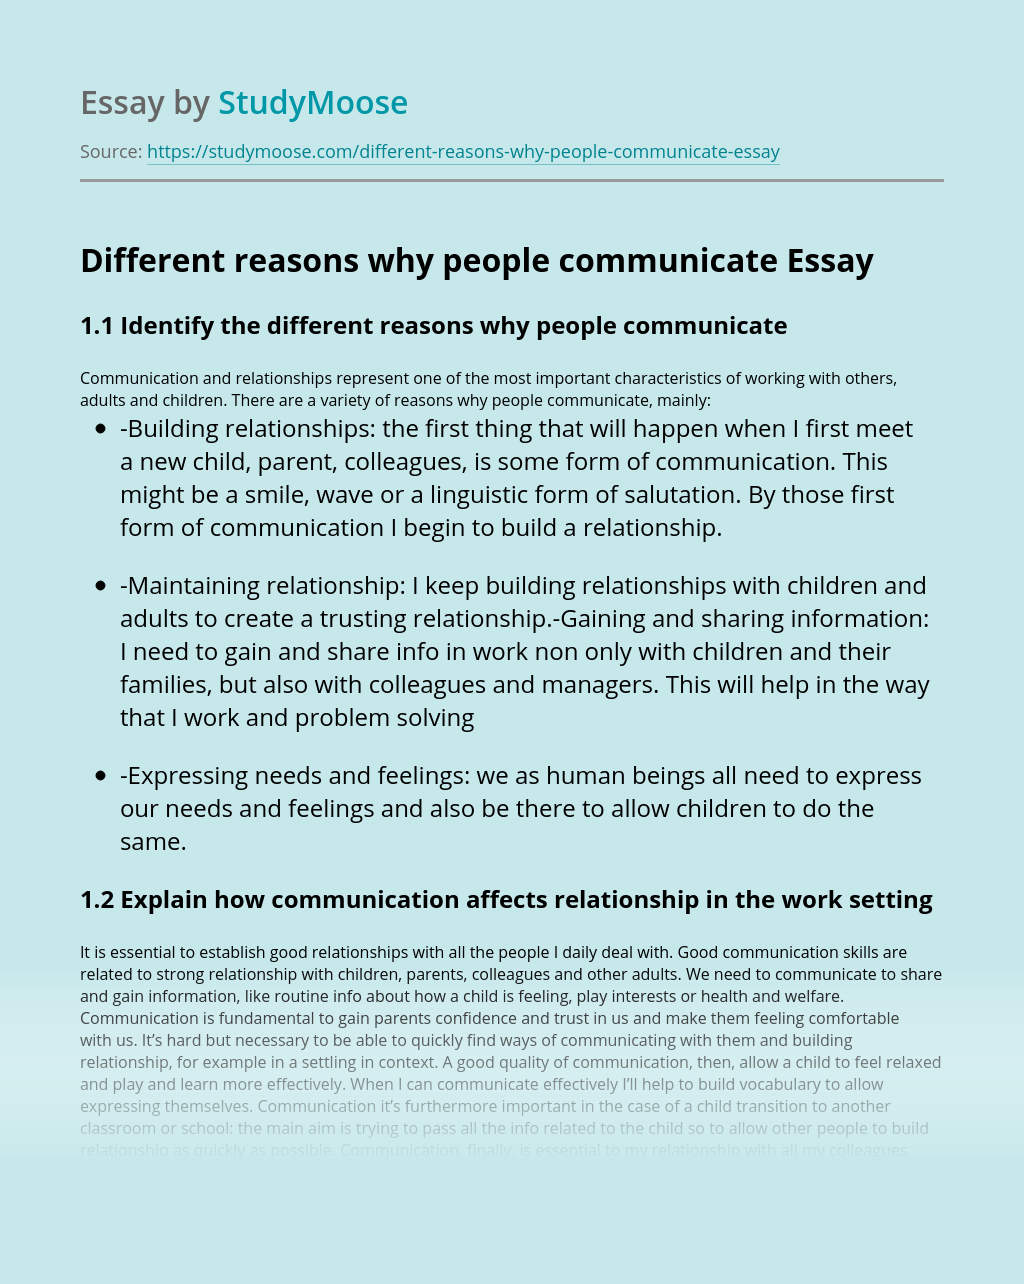 Different reasons why people communicate